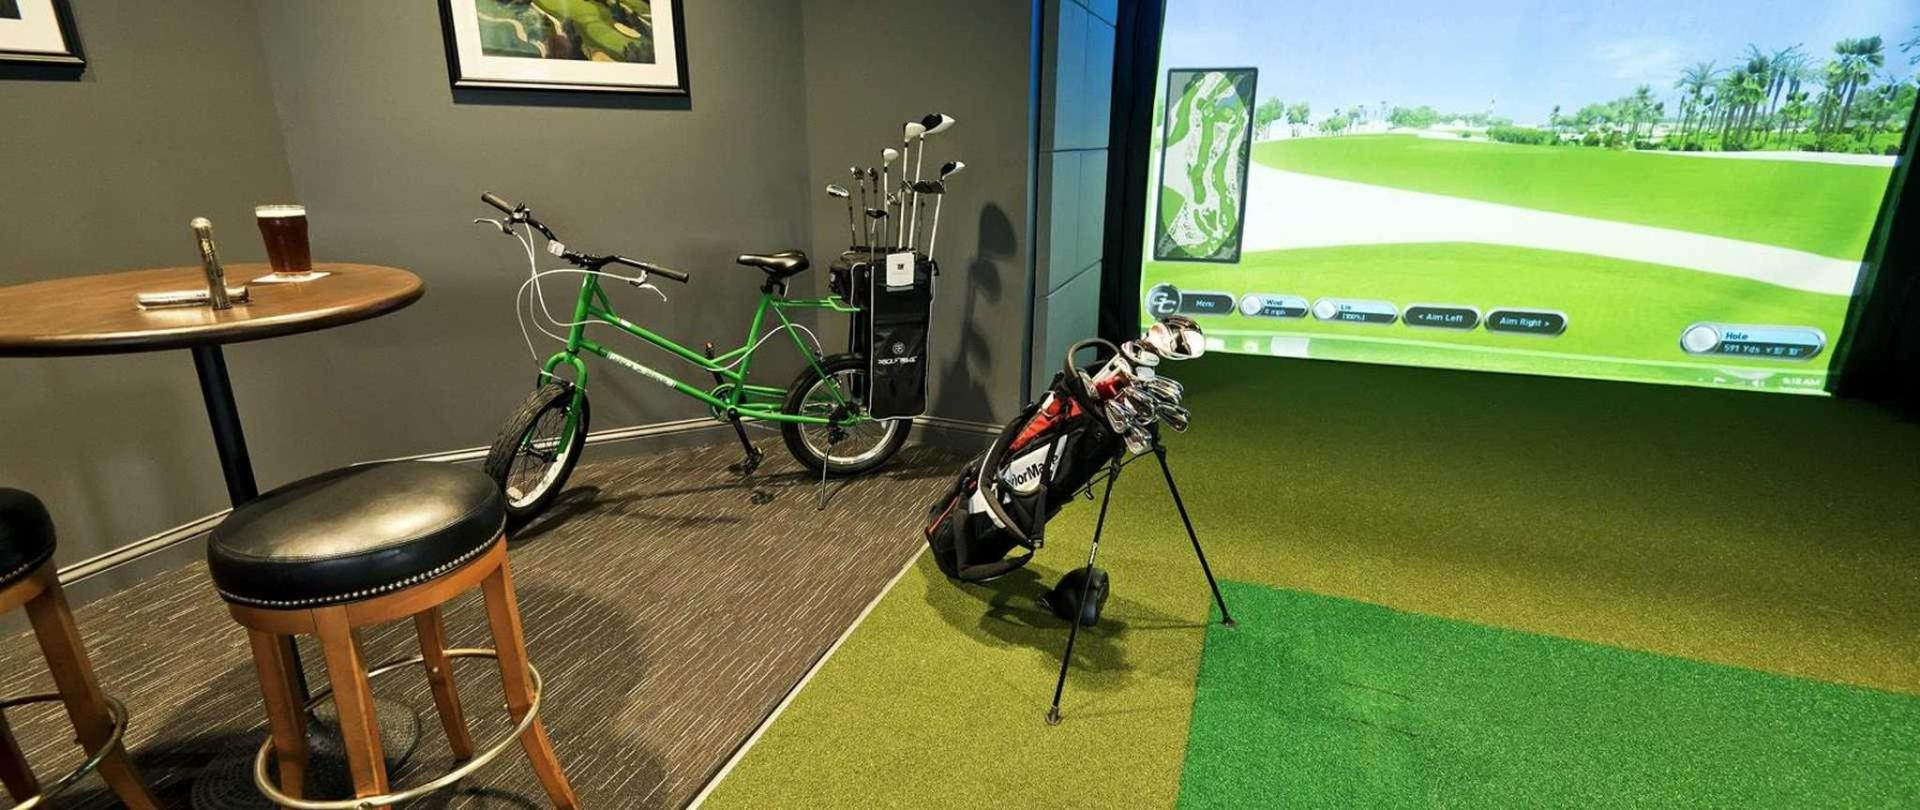 golf-simulator.jpg.1920x810_default.jpg